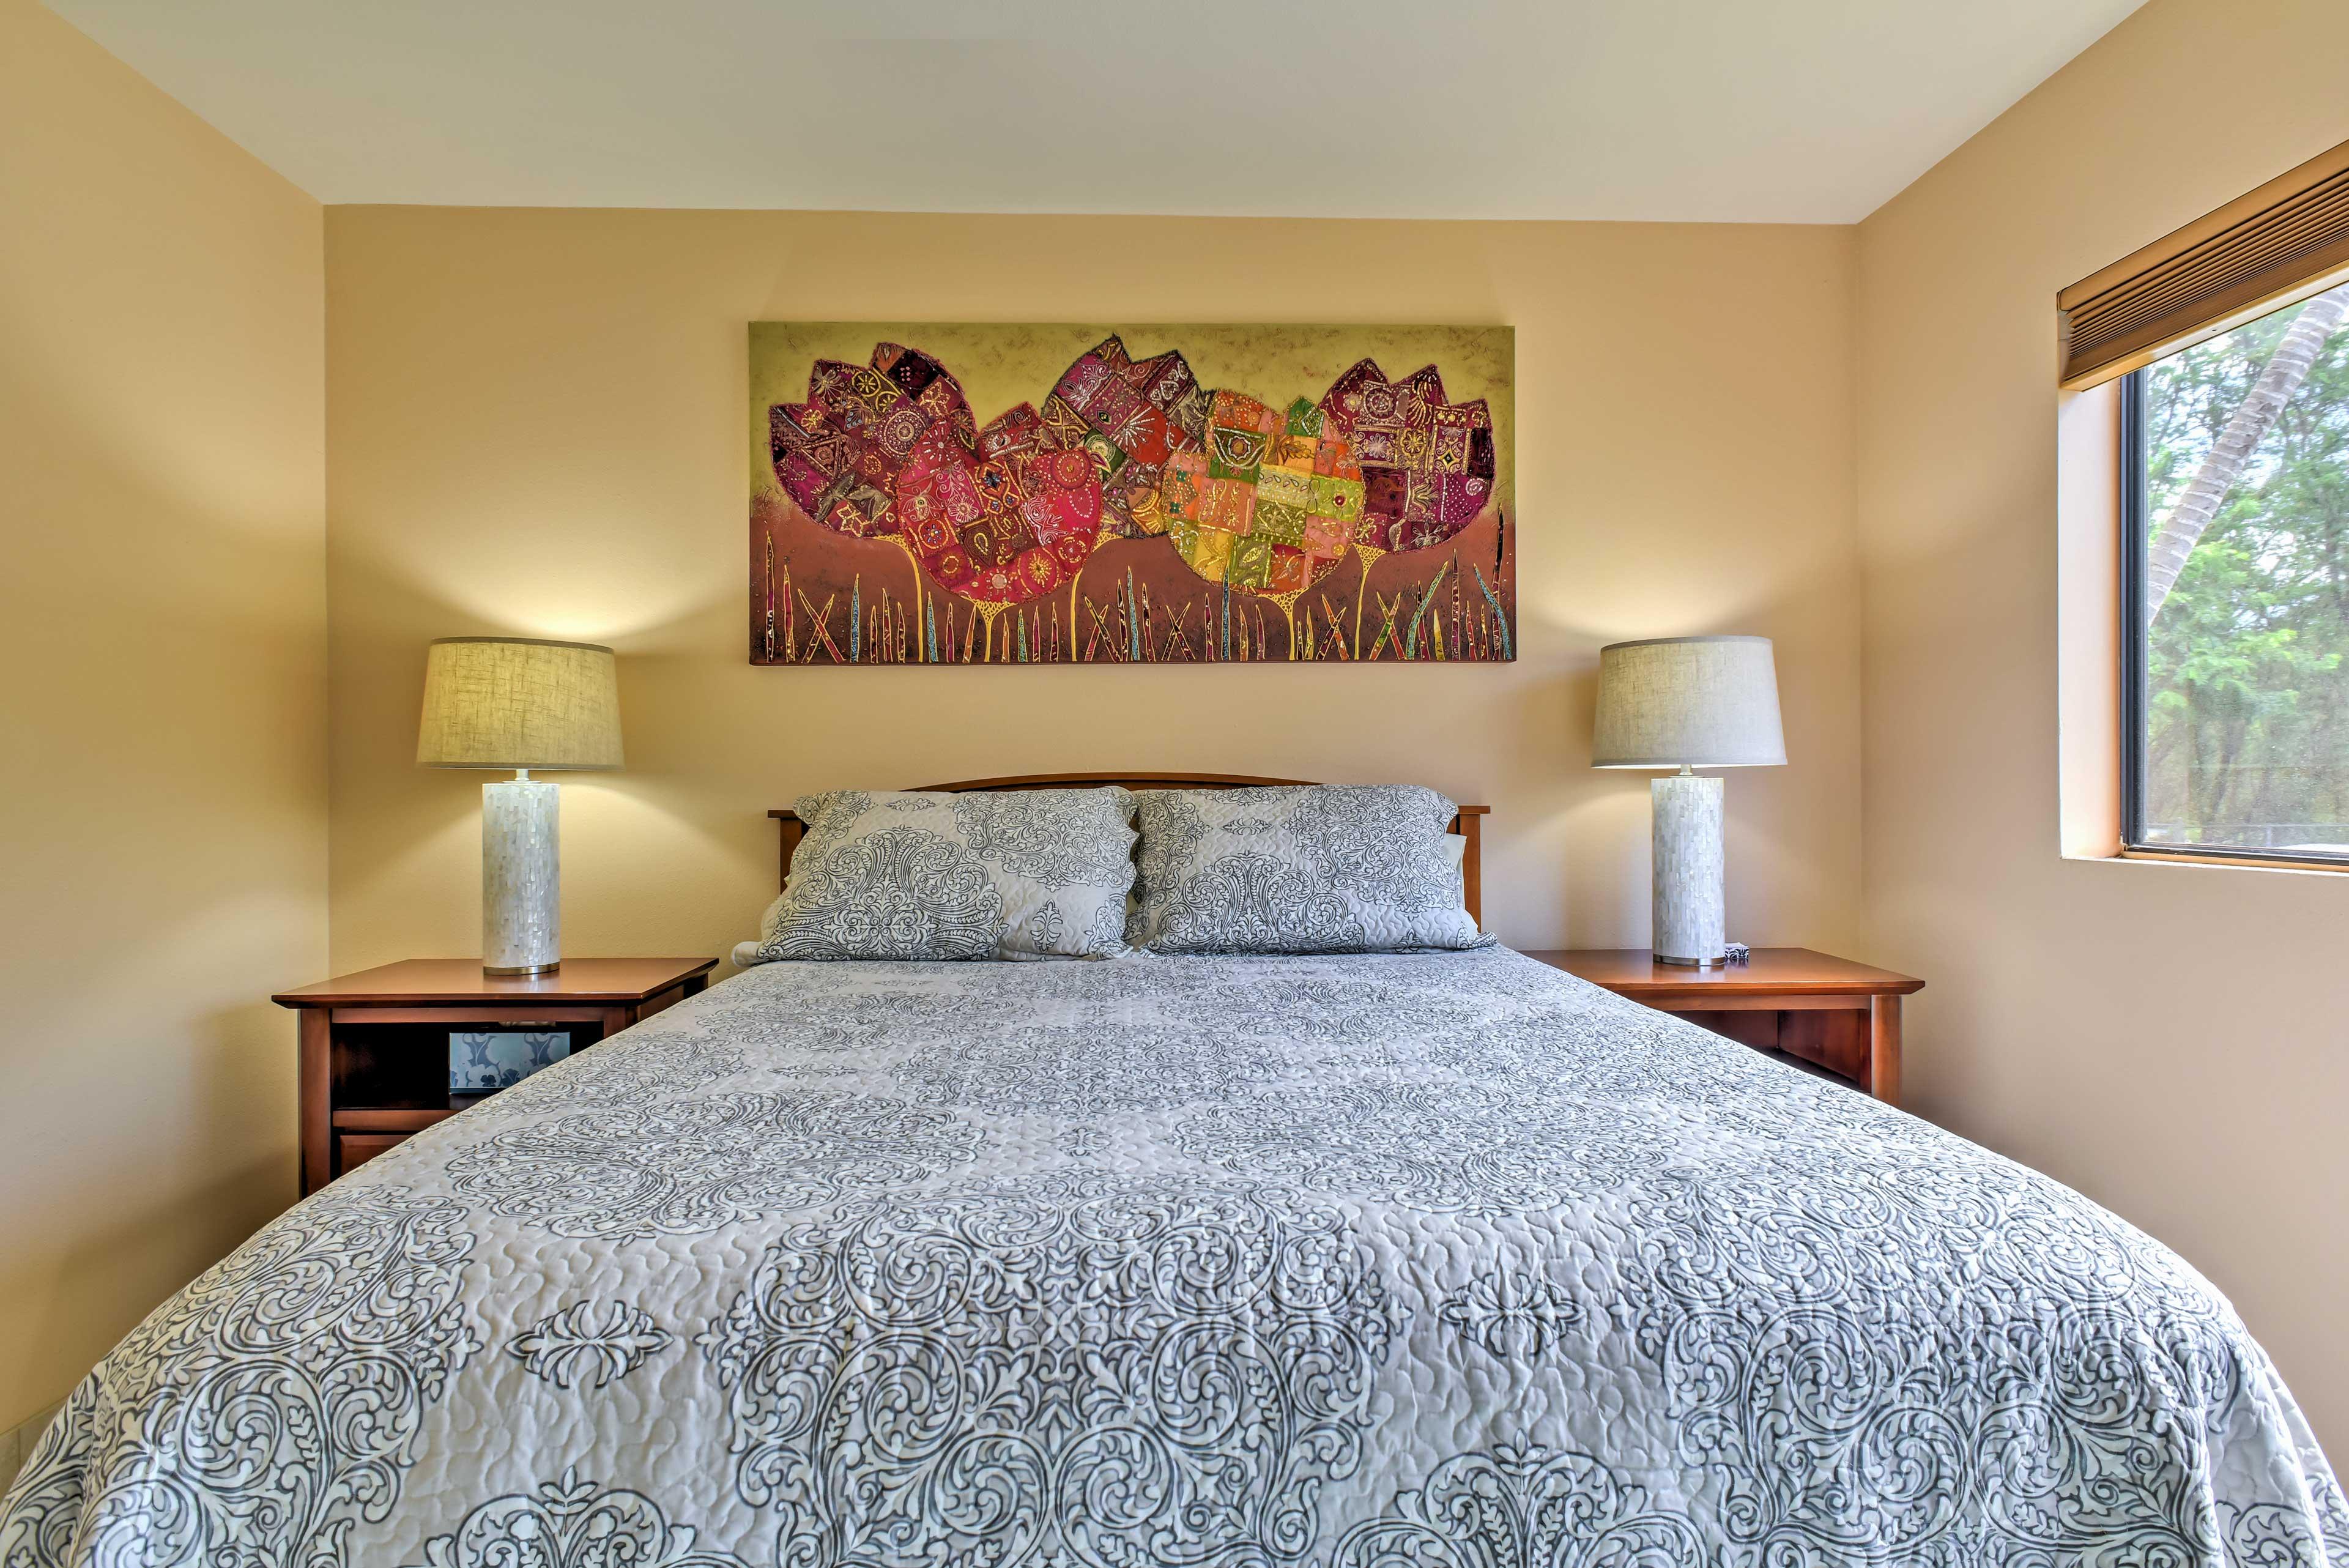 Two guests will sleep comfortably each night in the bedroom.